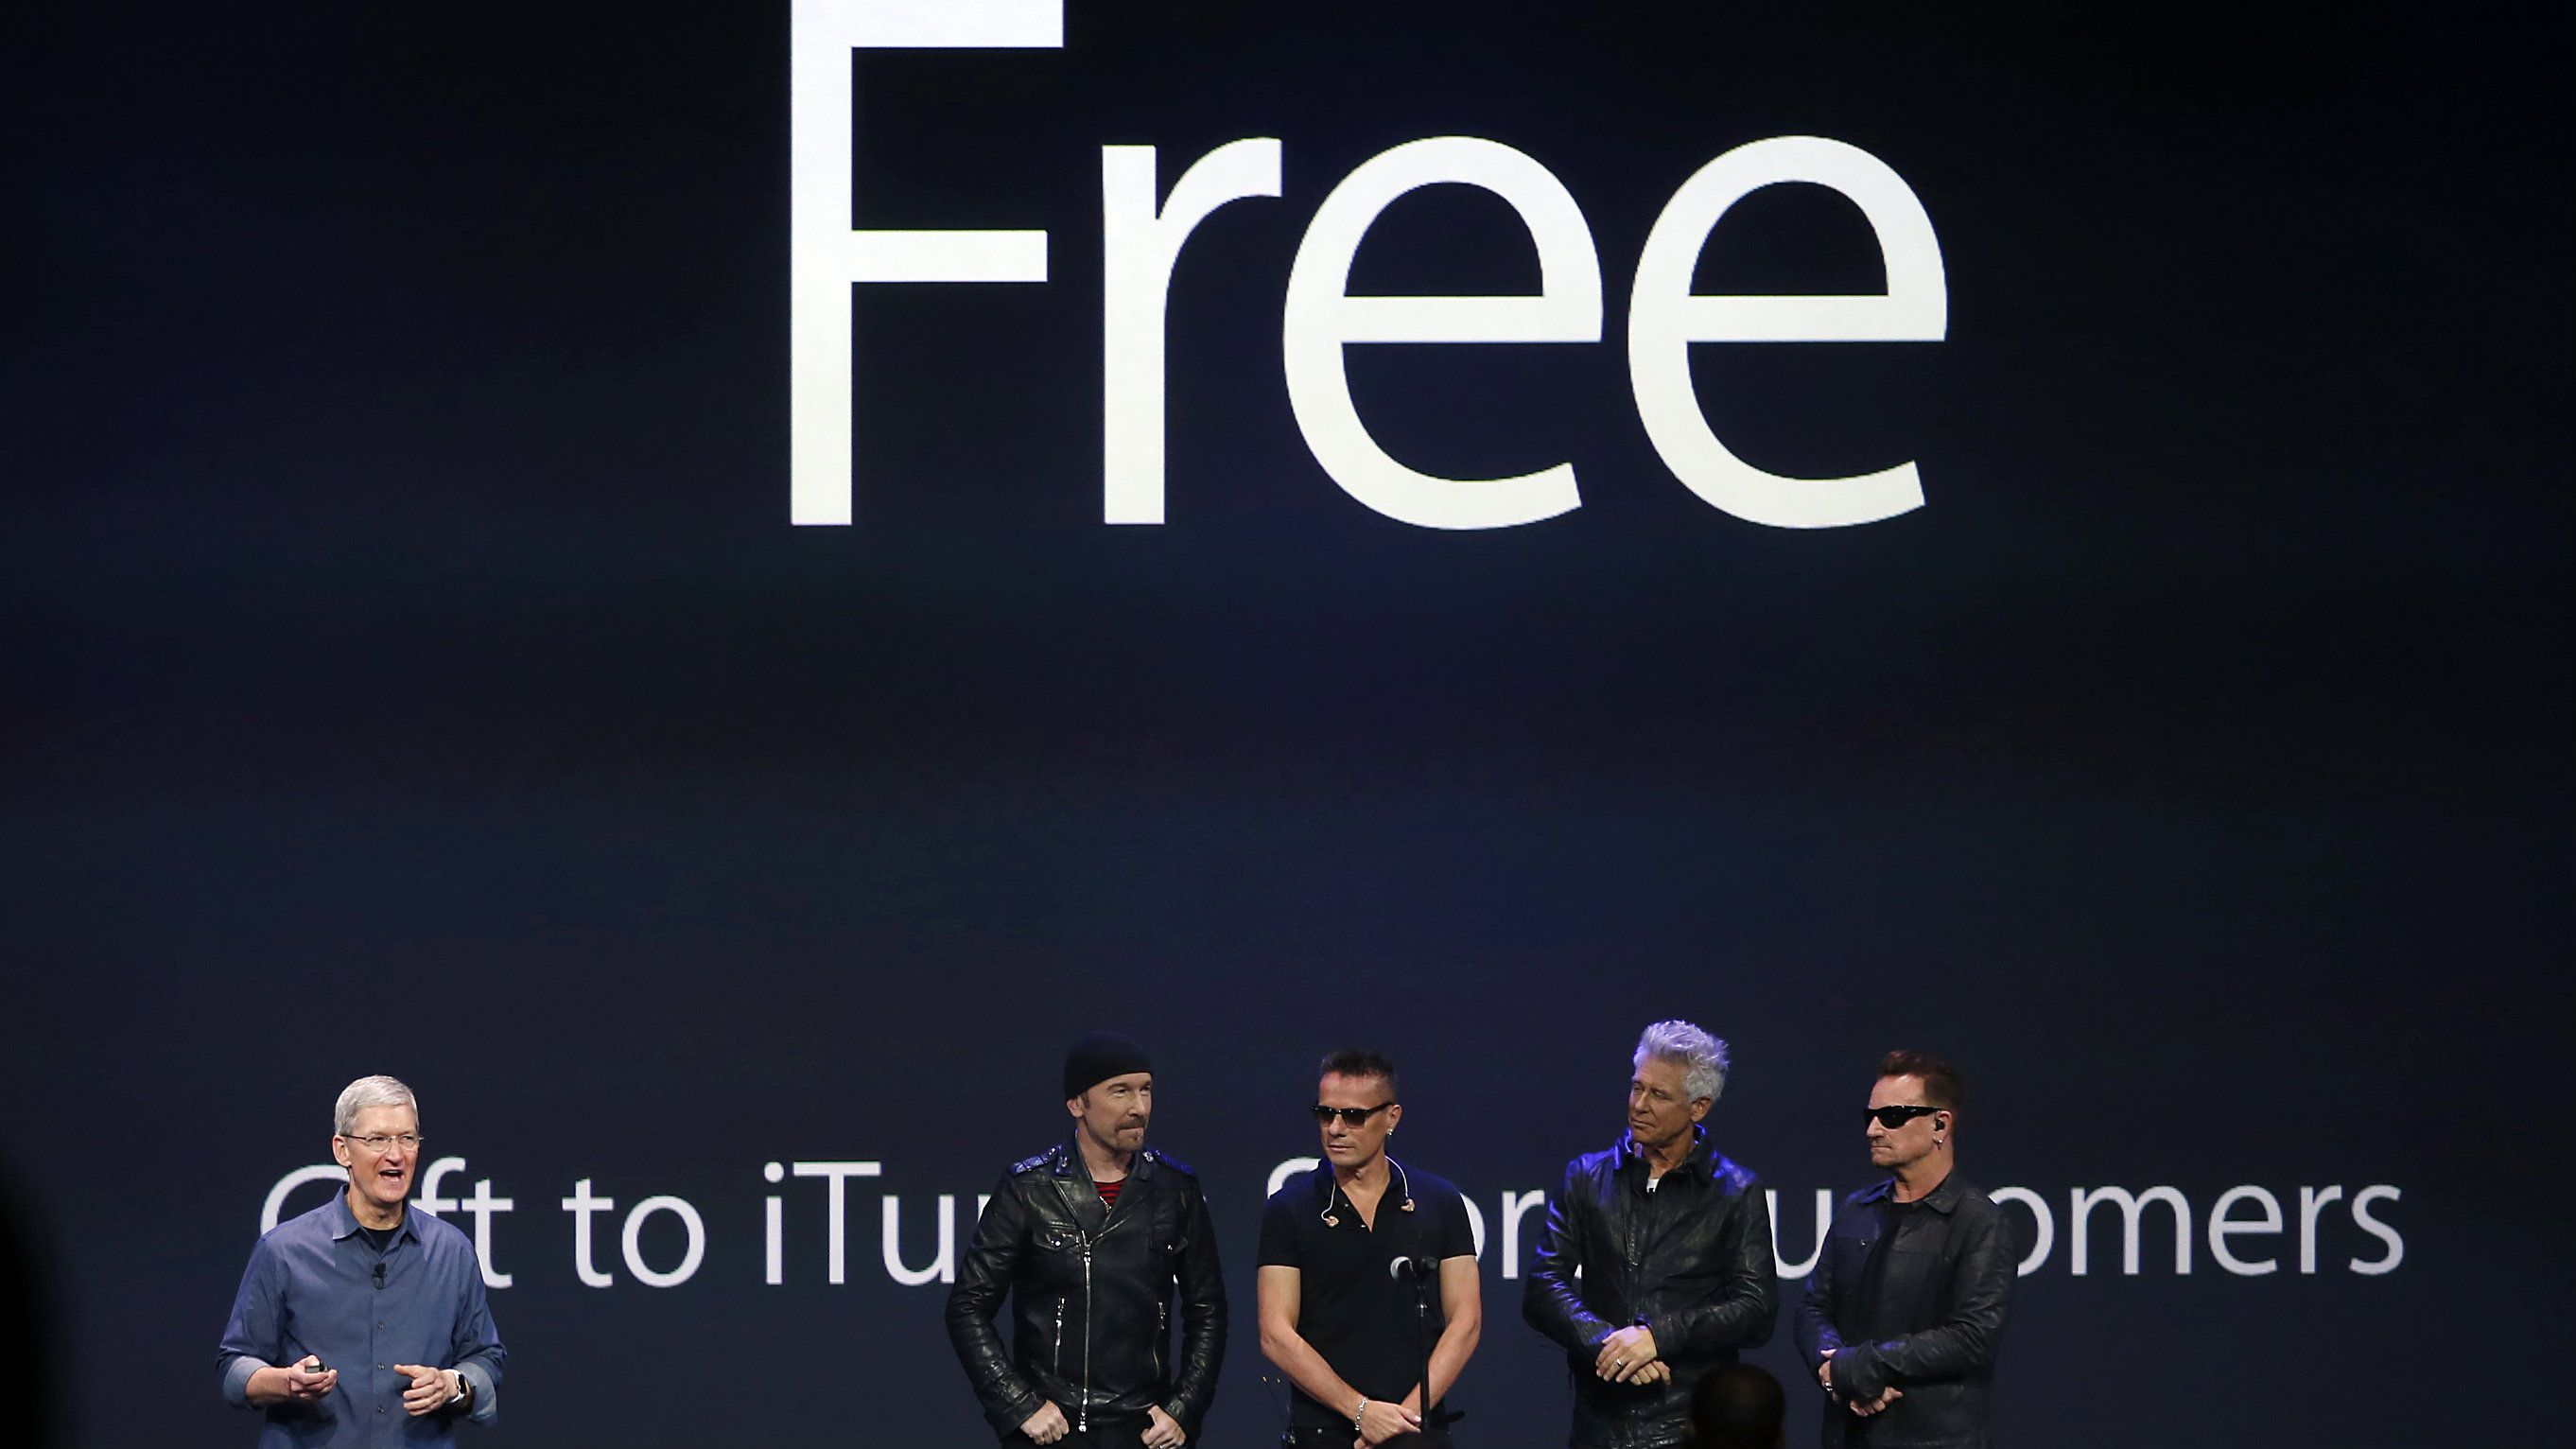 Apple CEO Tim Cook (L) stands with Irish rock band U2 as he speaks during an Apple event announcing the iPhone 6 and the Apple Watch at the Flint Center in Cupertino, California, September 9, 2014.